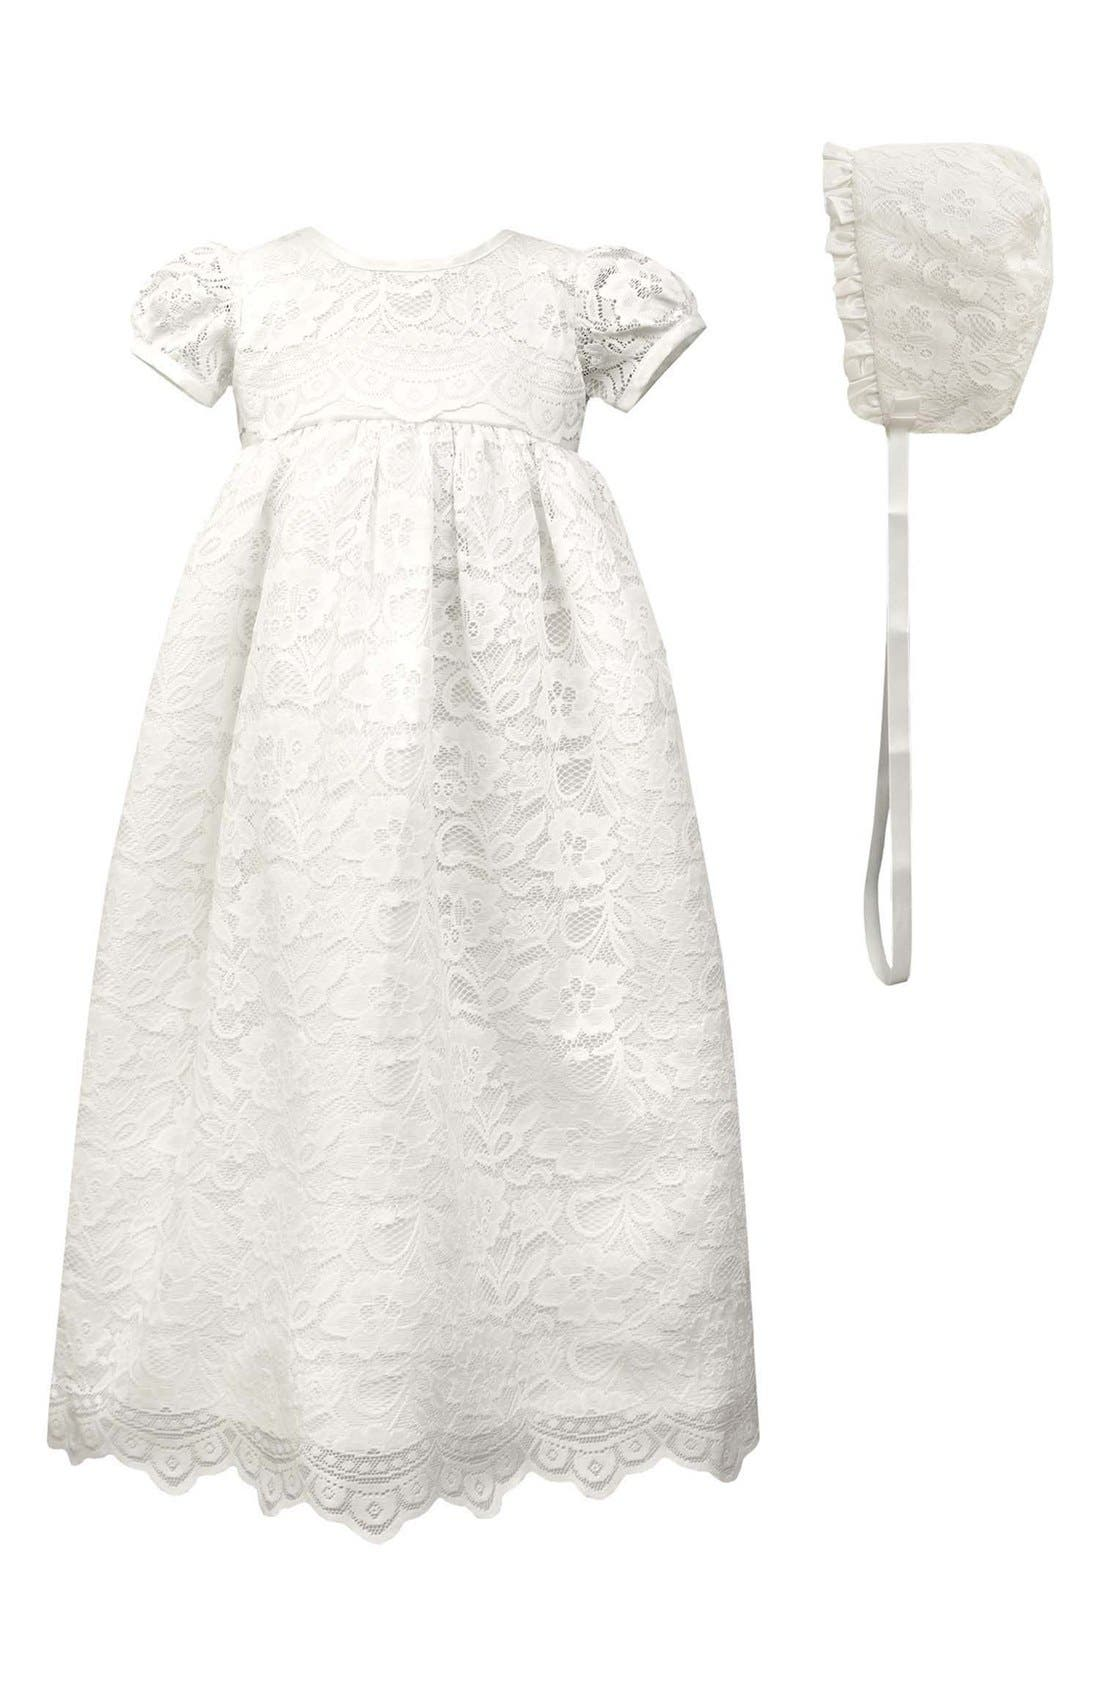 C.I. CASTRO & CO. Scalloped Lace Christening Gown